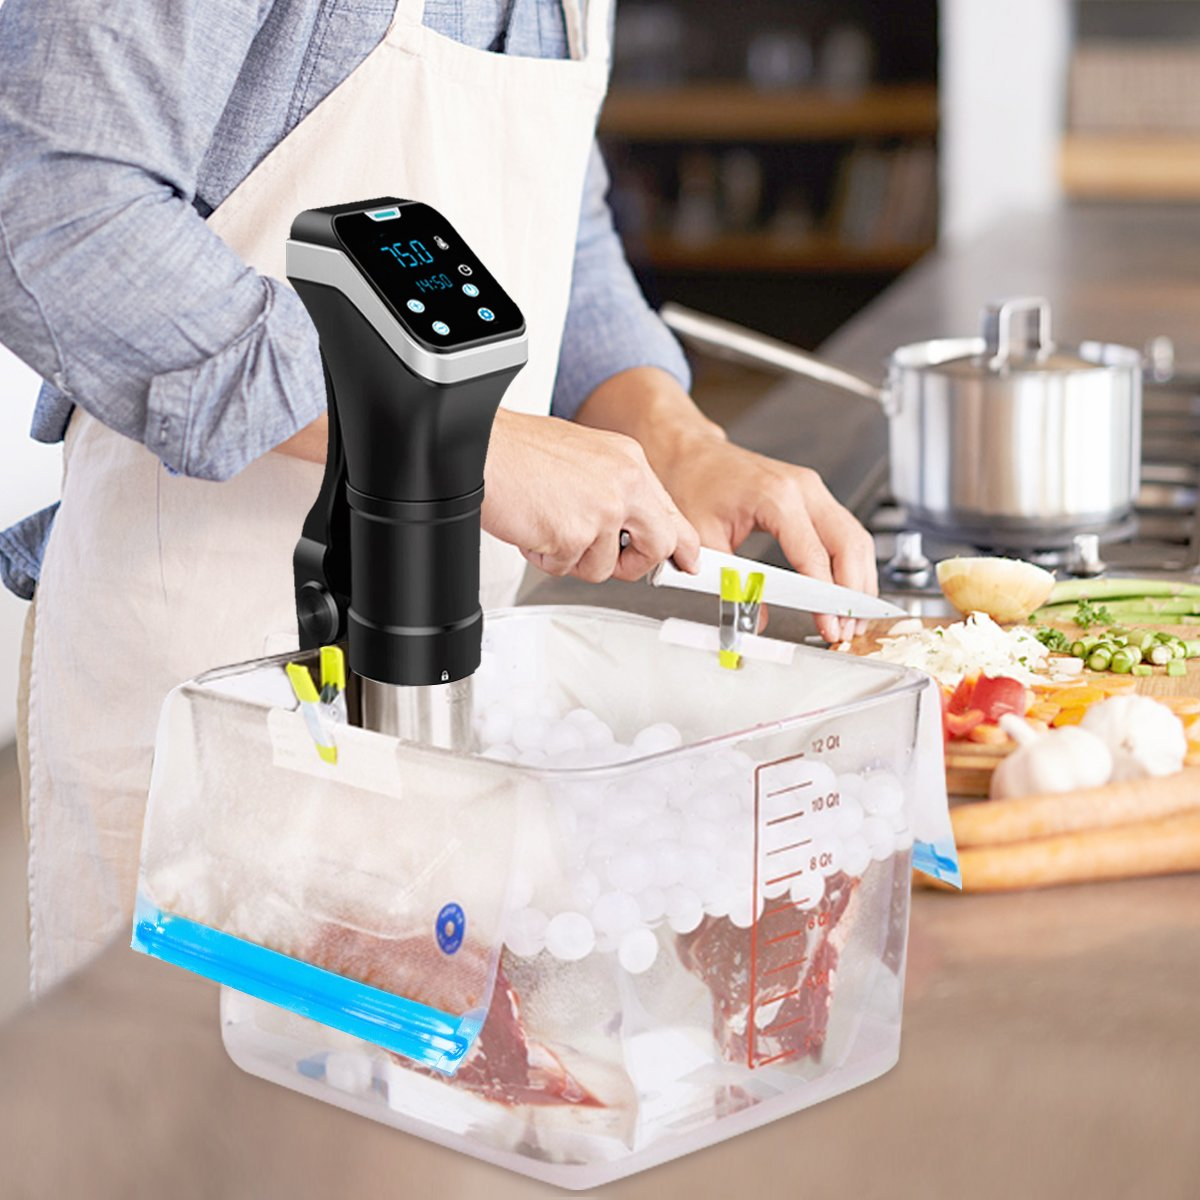 Sous Vide Cooker,Banne 800W 110V Digital Timer Manual Controlled IPX7 Waterproof Immersion Circulator Cooker with Cookbook by Banne